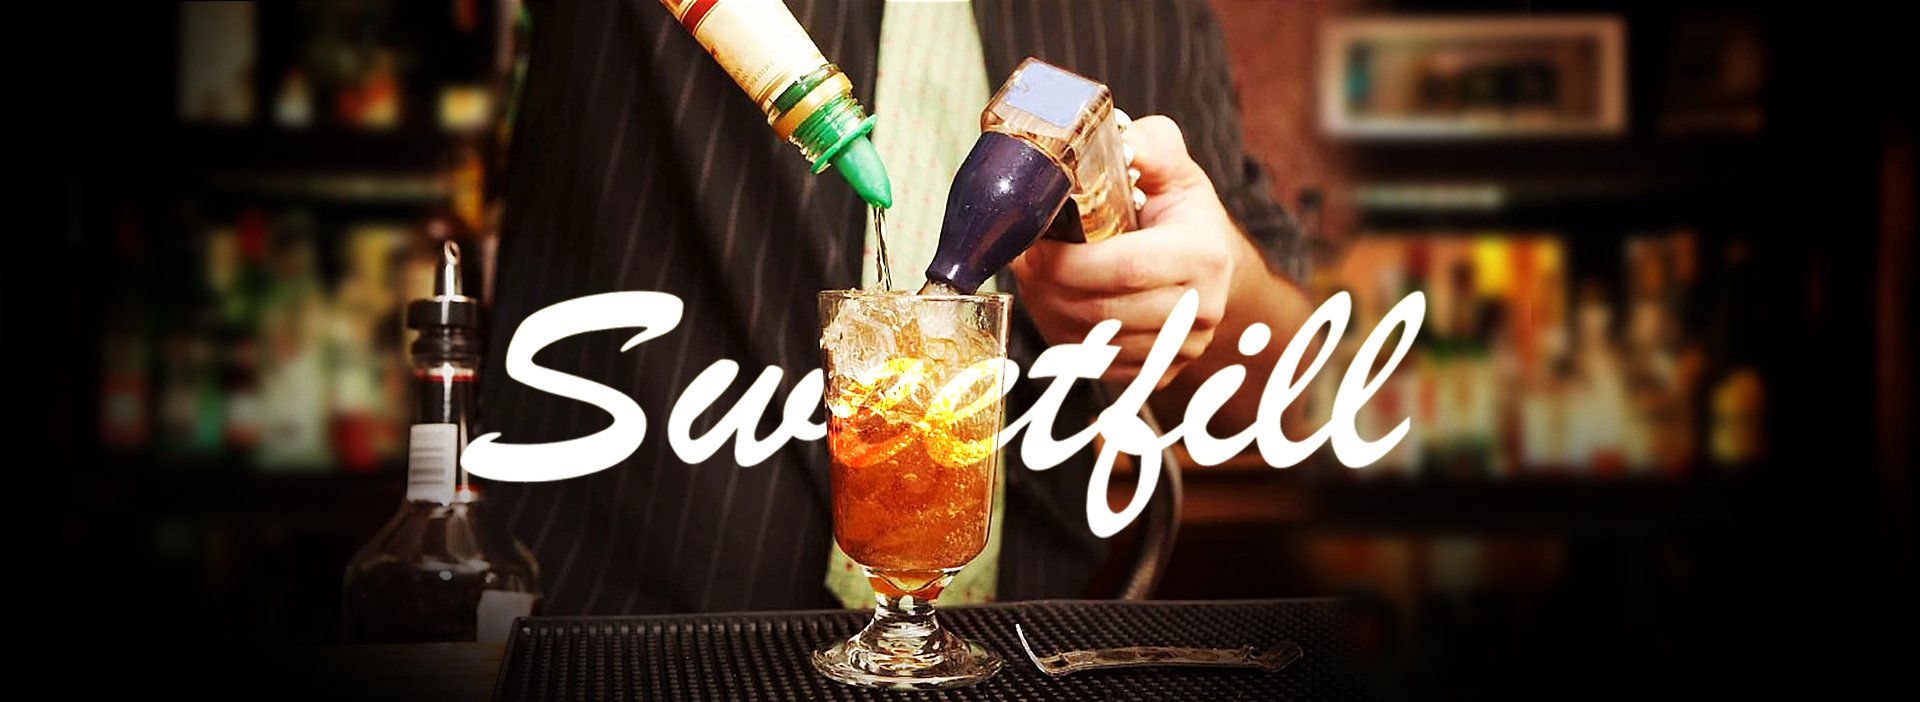 Cocktails sweetfill